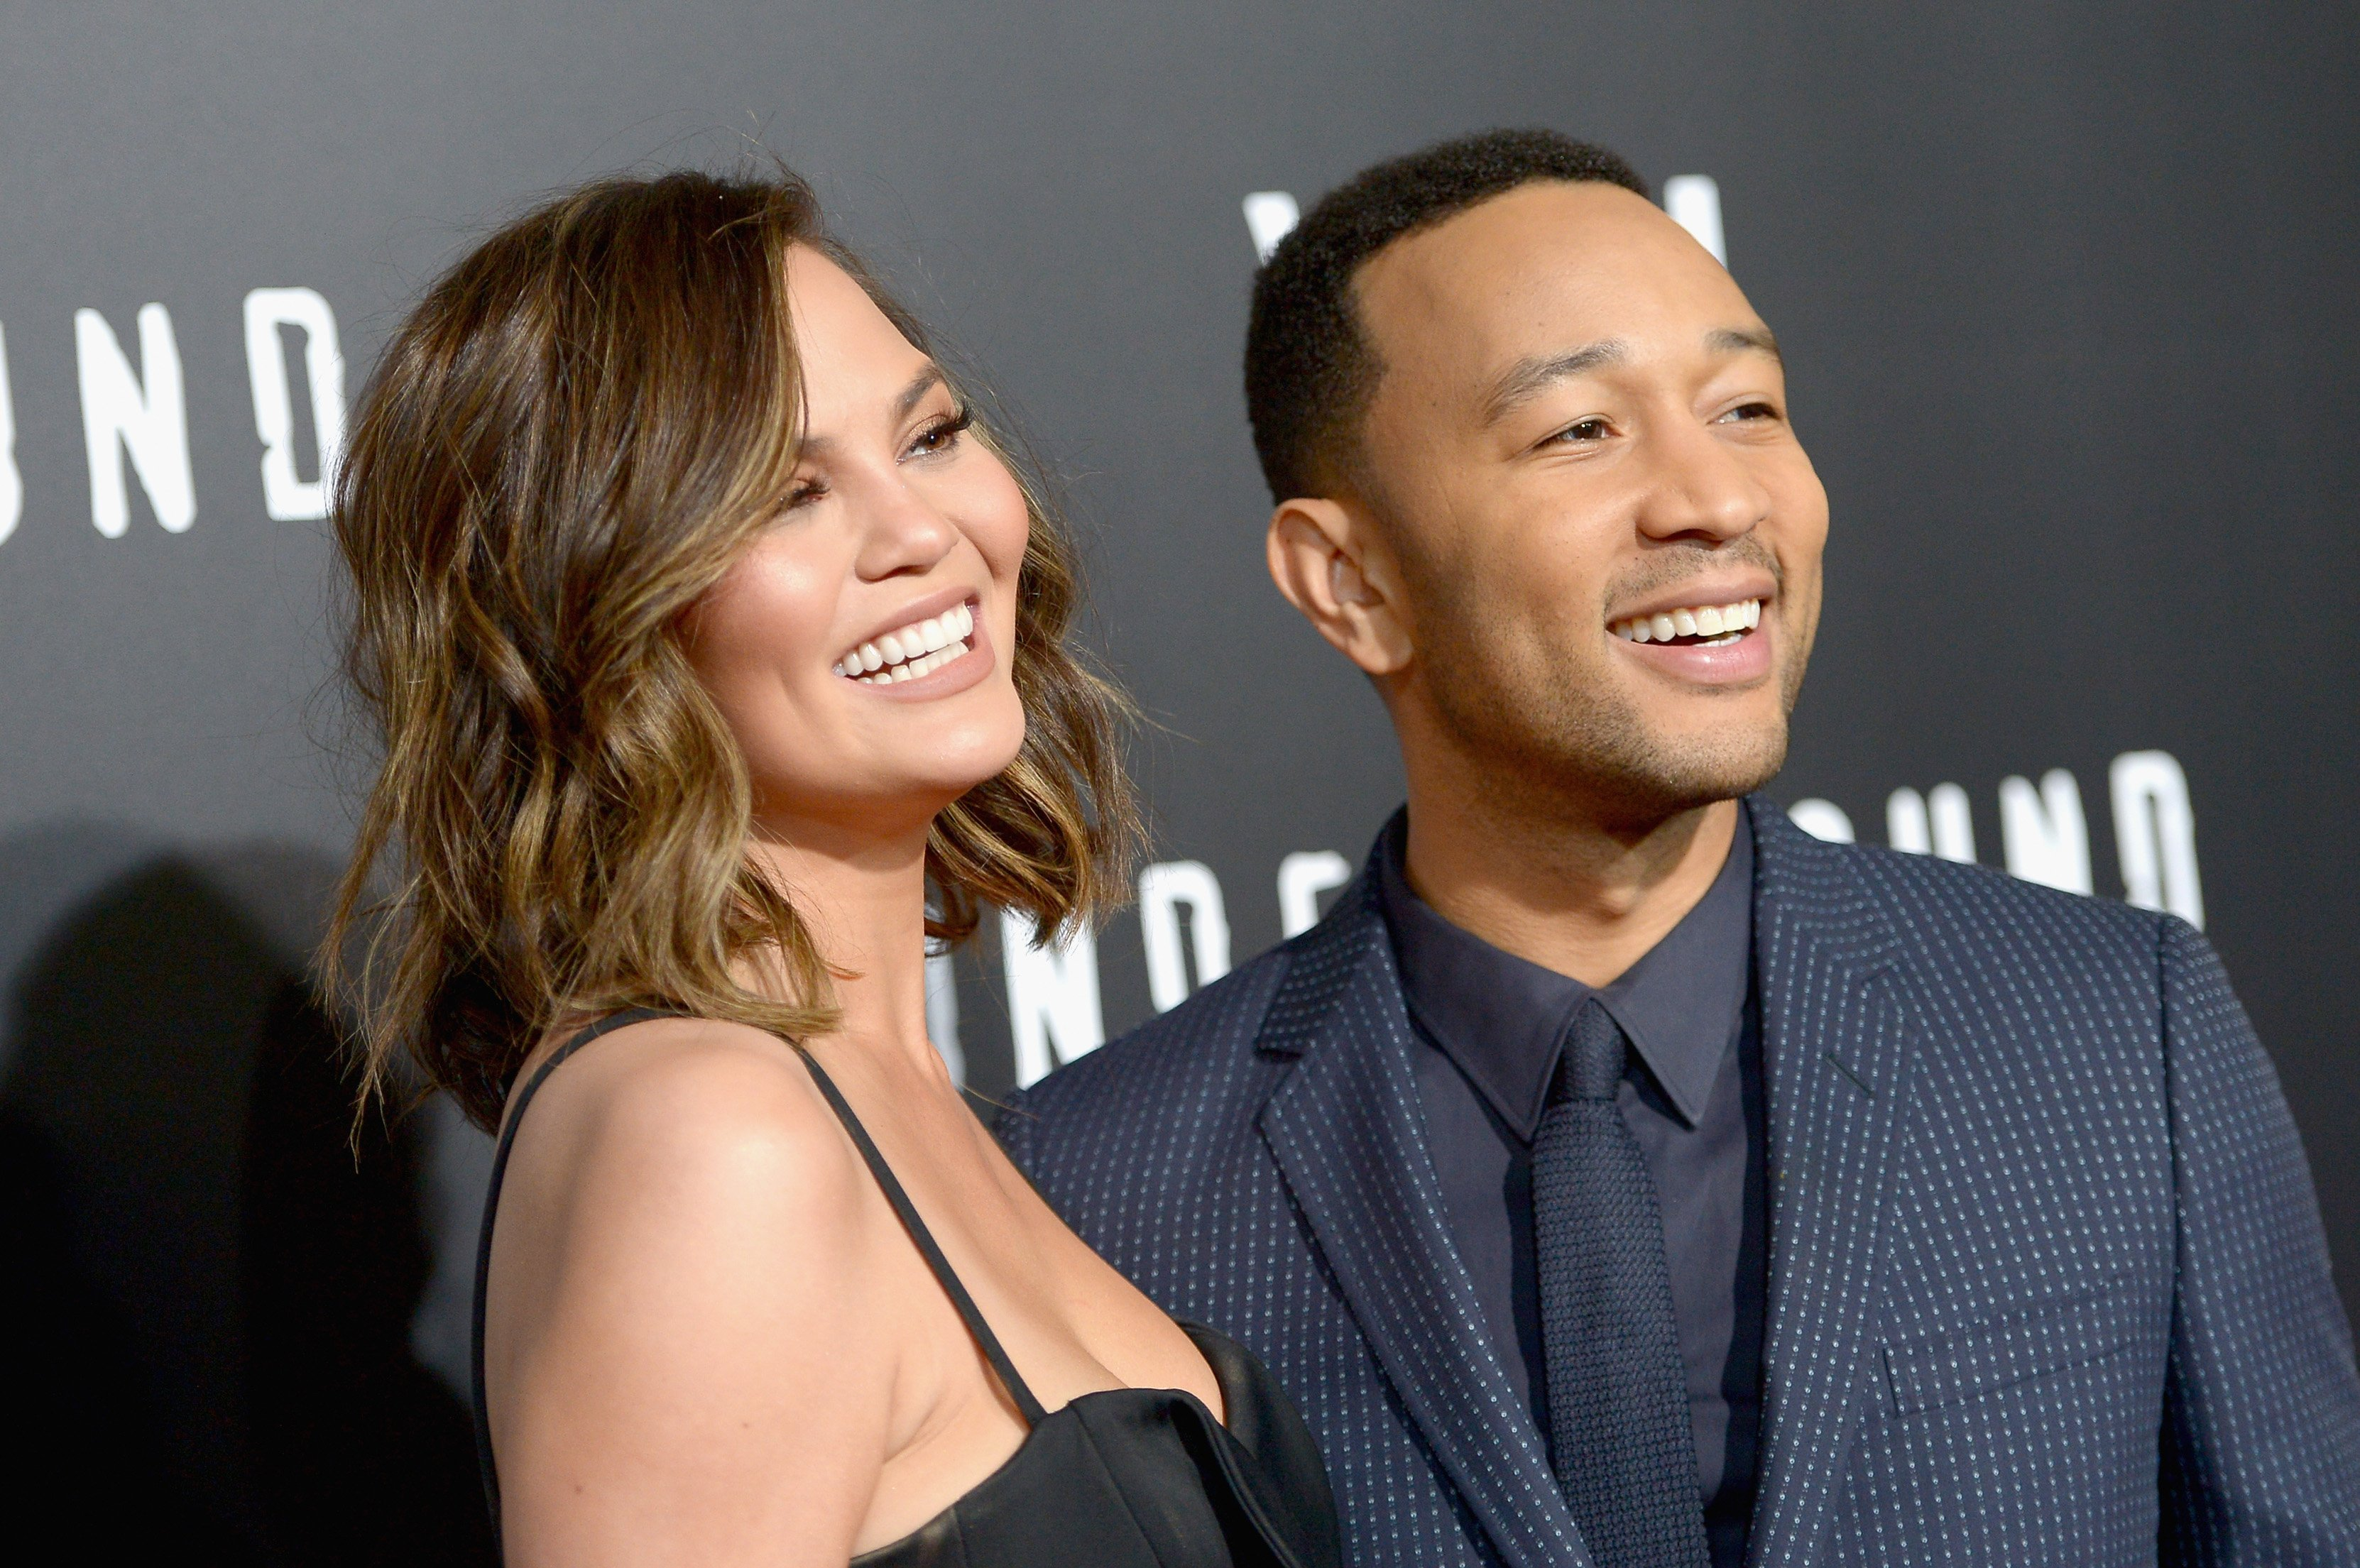 """Chrissy Teigen and John Legend pictured at WGN America's """"Underground"""" Season 2 premiere screening, Westwood, California, 2017.   Photo: Getty Images"""